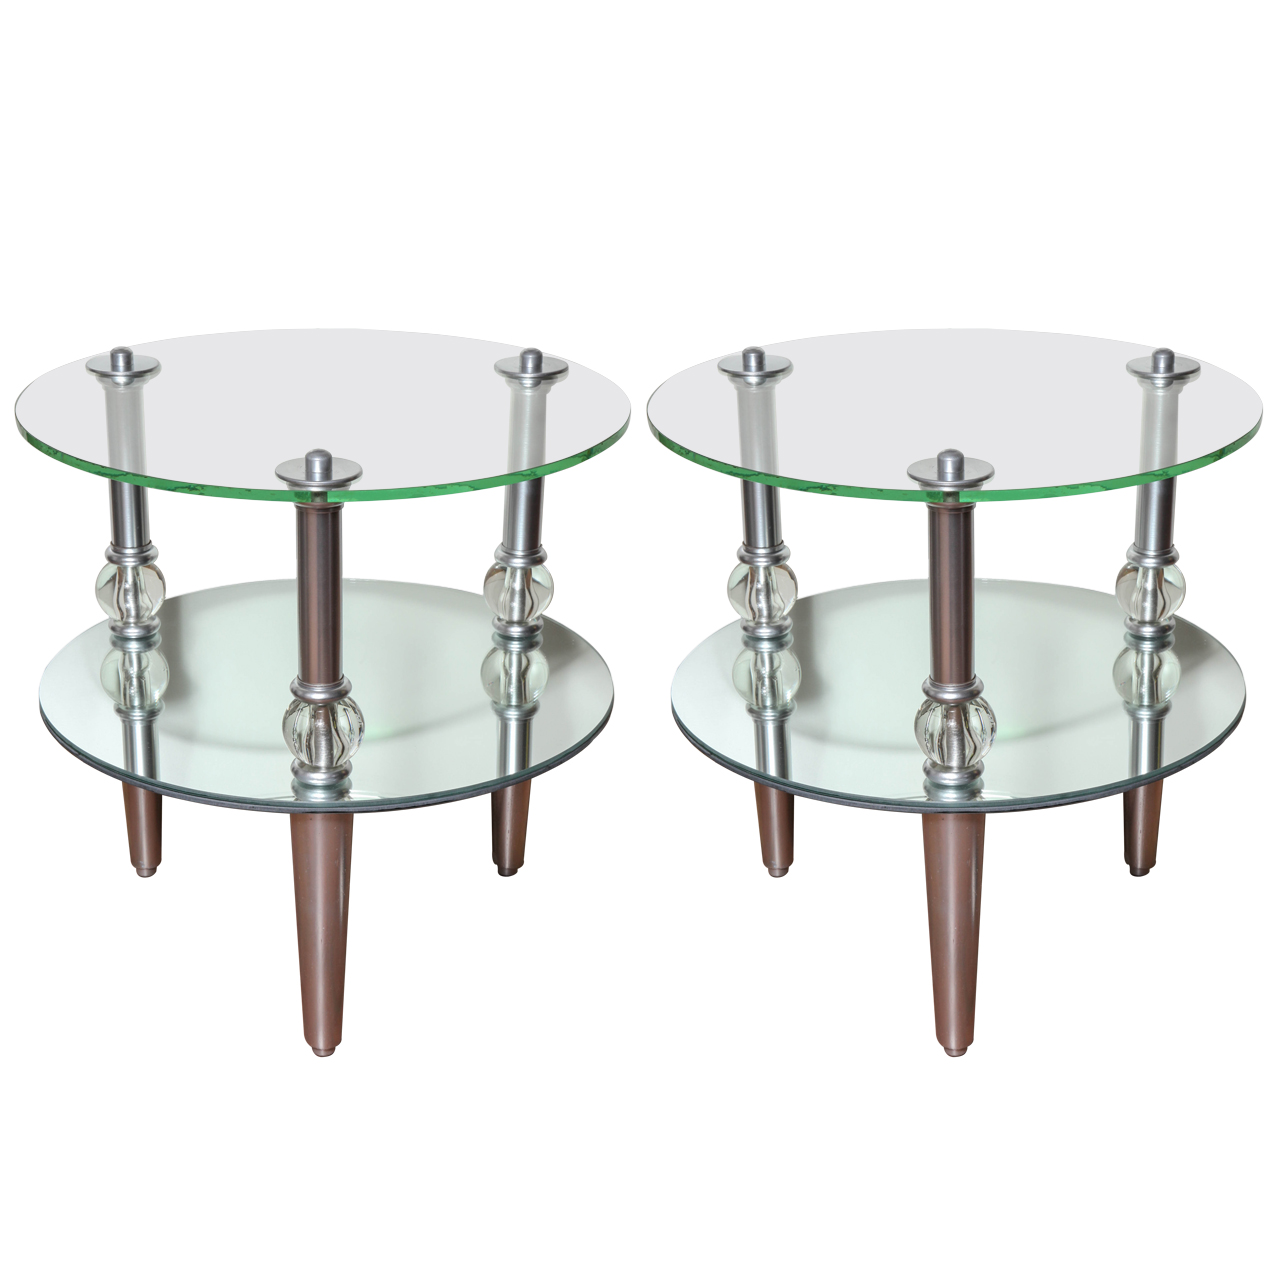 pair of mid century modern mirrored side tables pair of mid century modern mirrored side tables